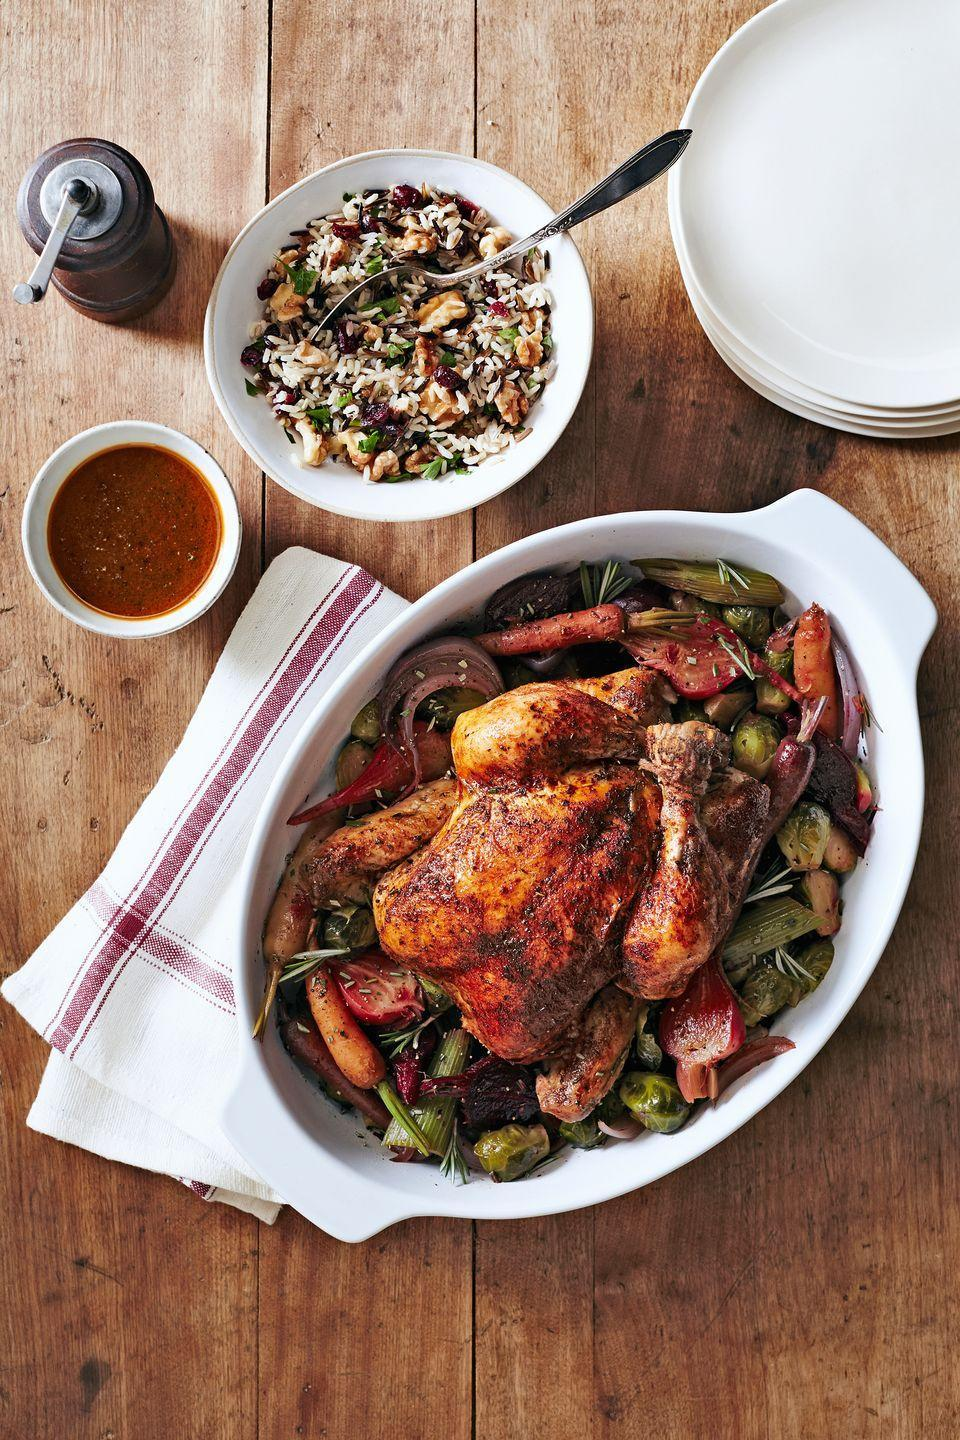 """<p>Need something healthy and hands-off? Look no further than this easy-yet-impressive dinner that's sure to please your whole flock.</p><p><strong><a href=""""https://www.countryliving.com/food-drinks/recipes/a5689/herbed-chicken-beets-brussels-recipe-clx1014/"""" rel=""""nofollow noopener"""" target=""""_blank"""" data-ylk=""""slk:Get the recipe"""" class=""""link rapid-noclick-resp"""">Get the recipe</a>.</strong></p>"""